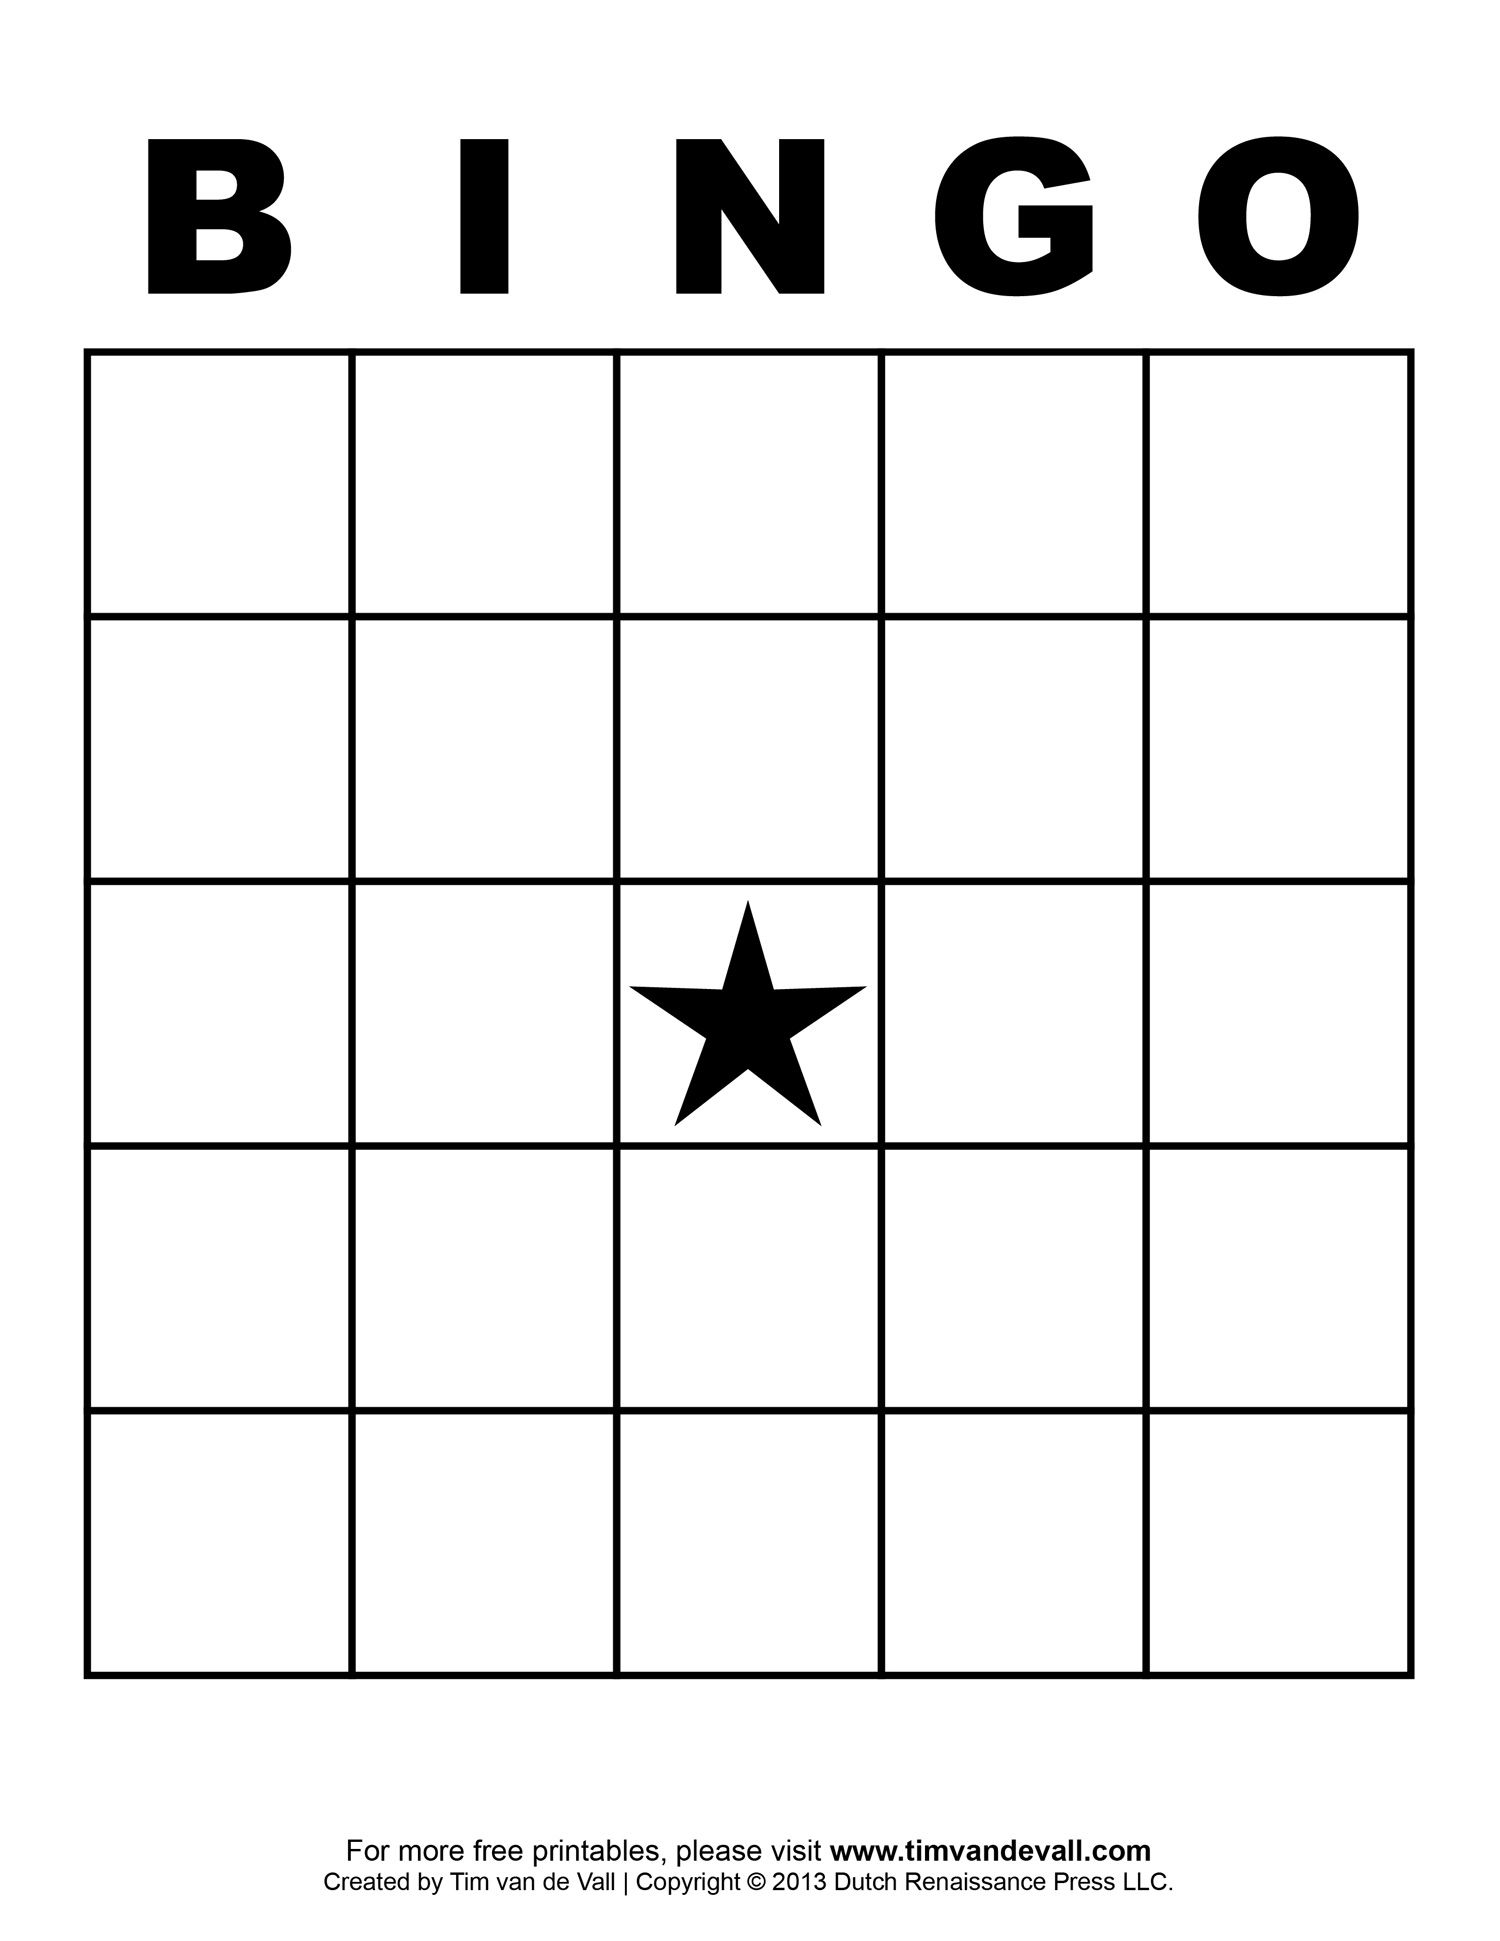 image relating to Word Fill in Printable called Totally free Printable Blank Bingo Playing cards Template 4 X 4 Clroom